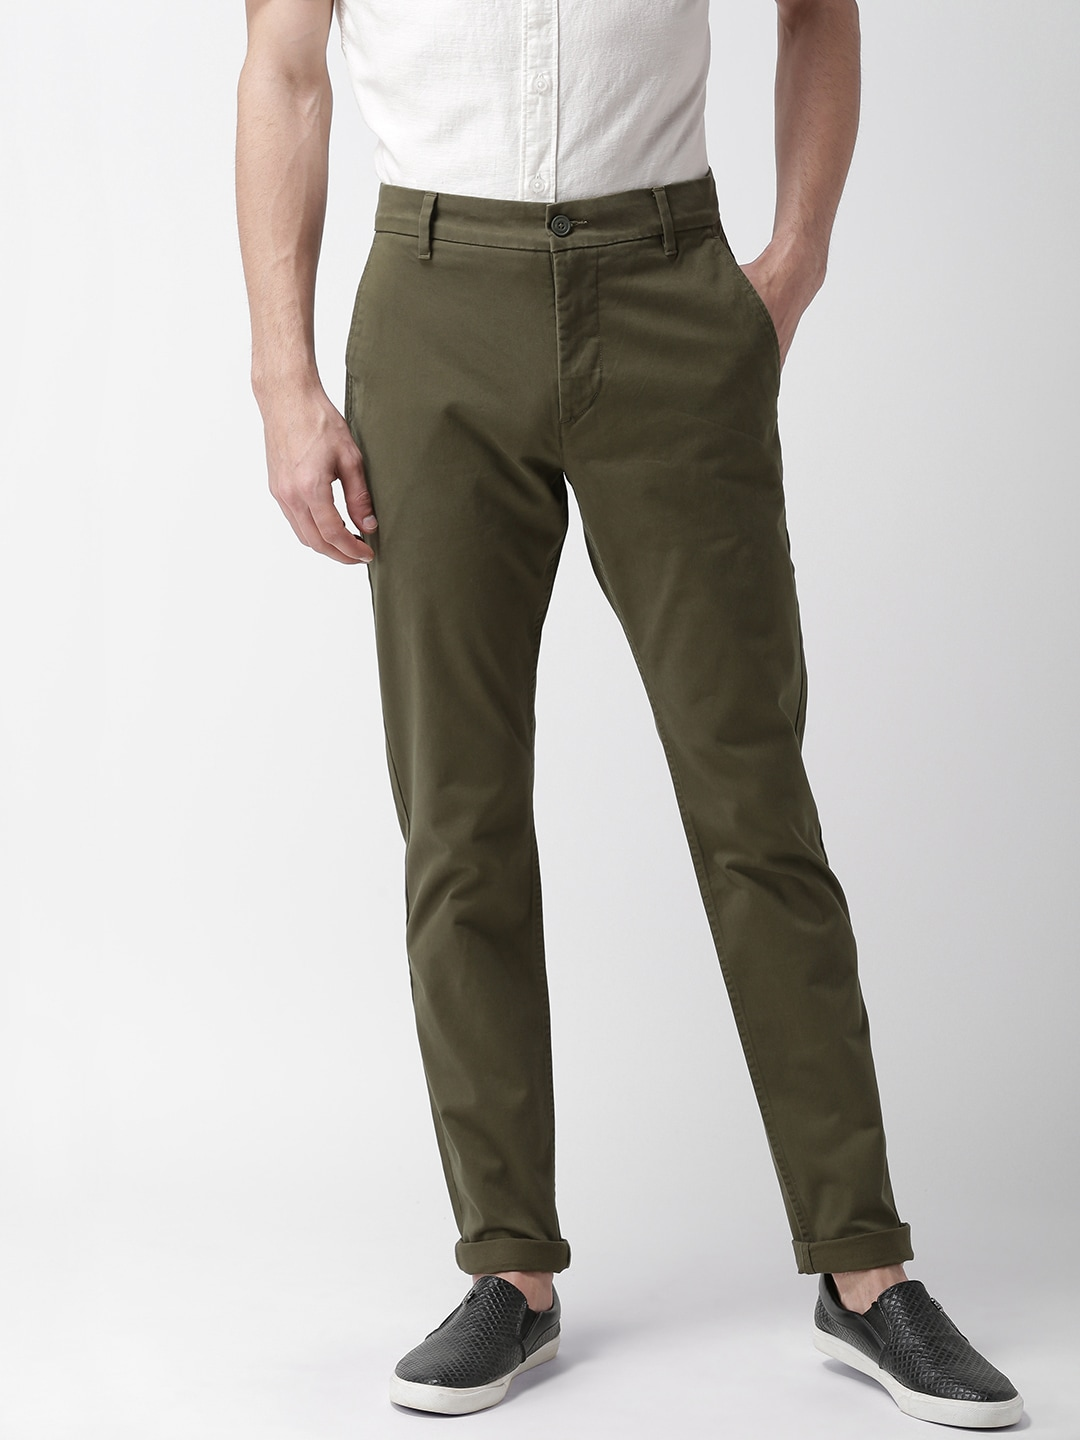 Premium Shop Chino Black Original Men Chinos Buy For Online In India Myntra